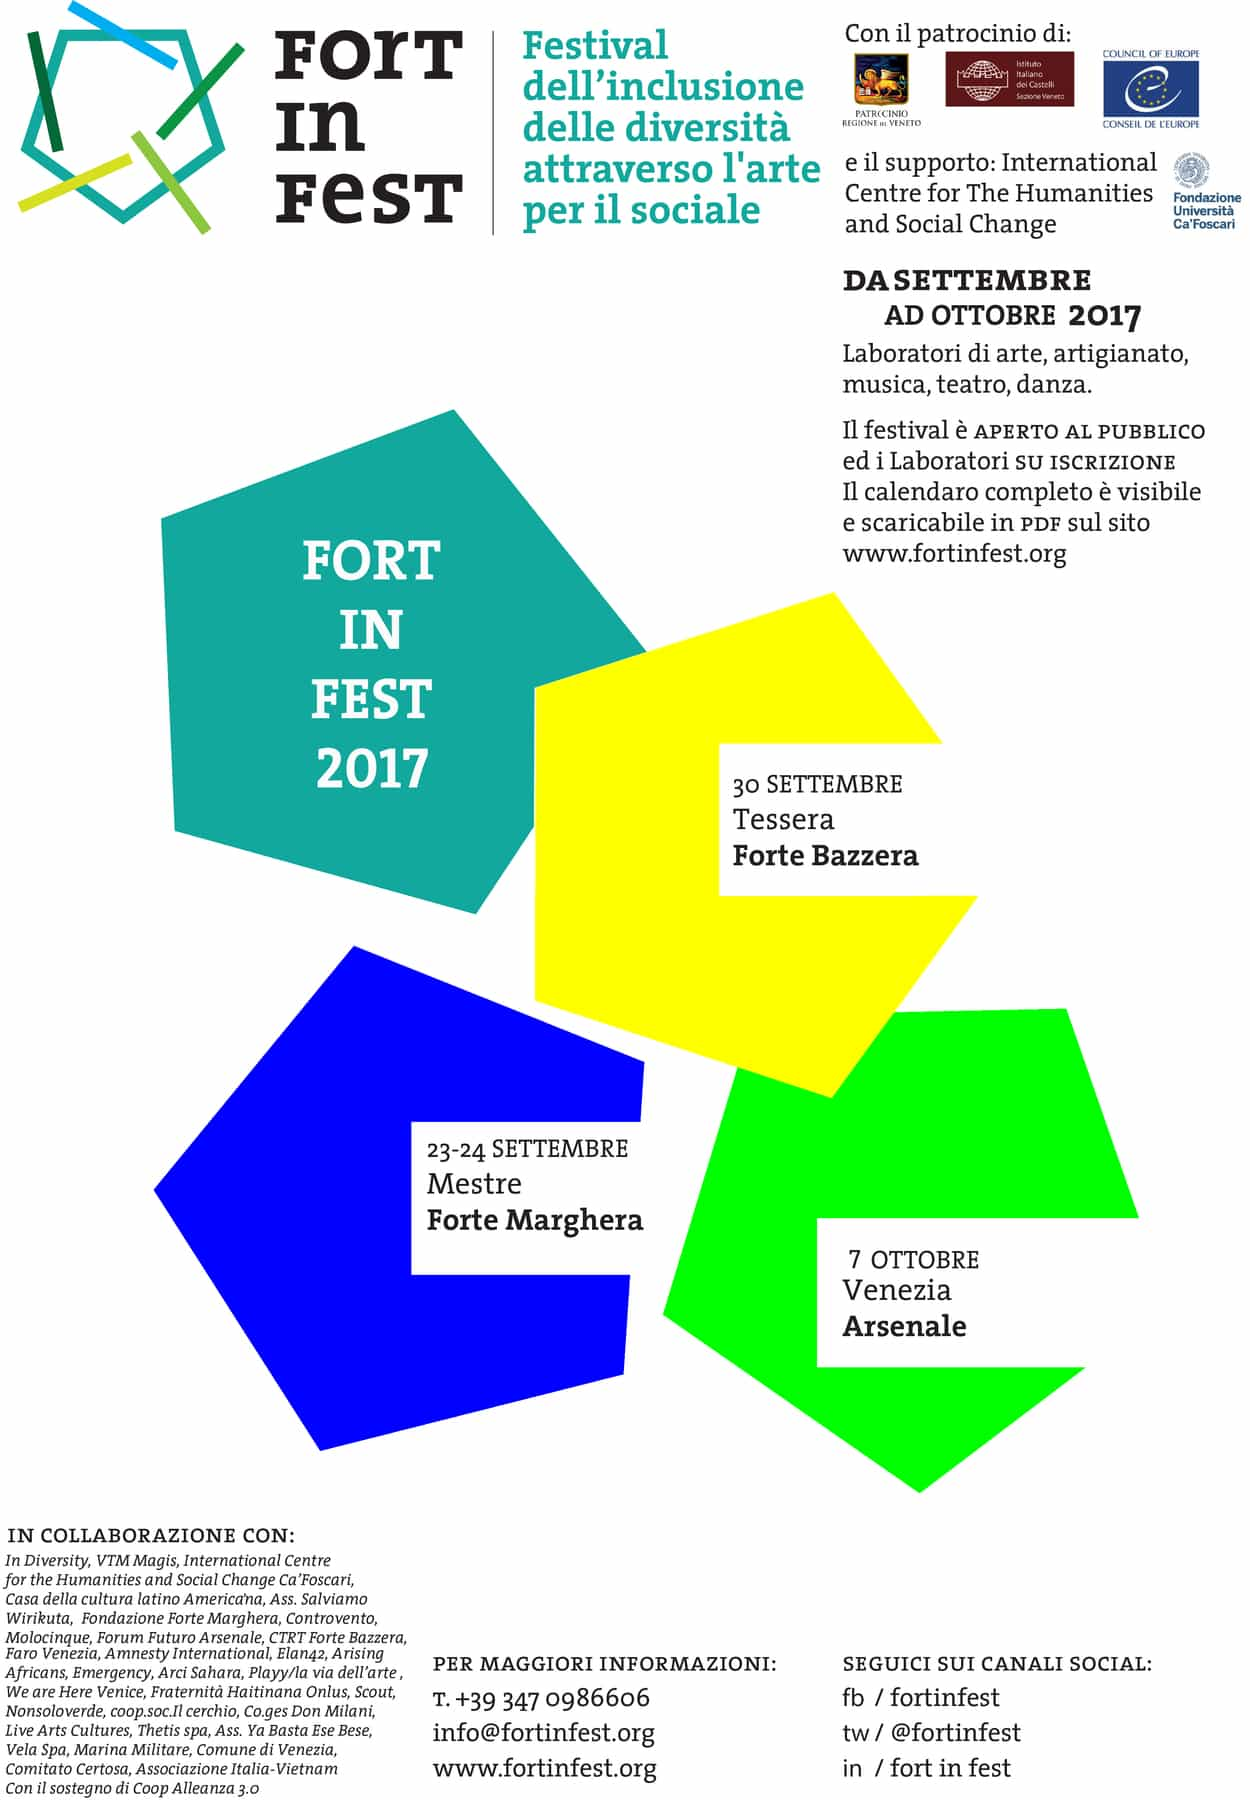 PROGRAMMA FORT IN FEST Second Edition 2017